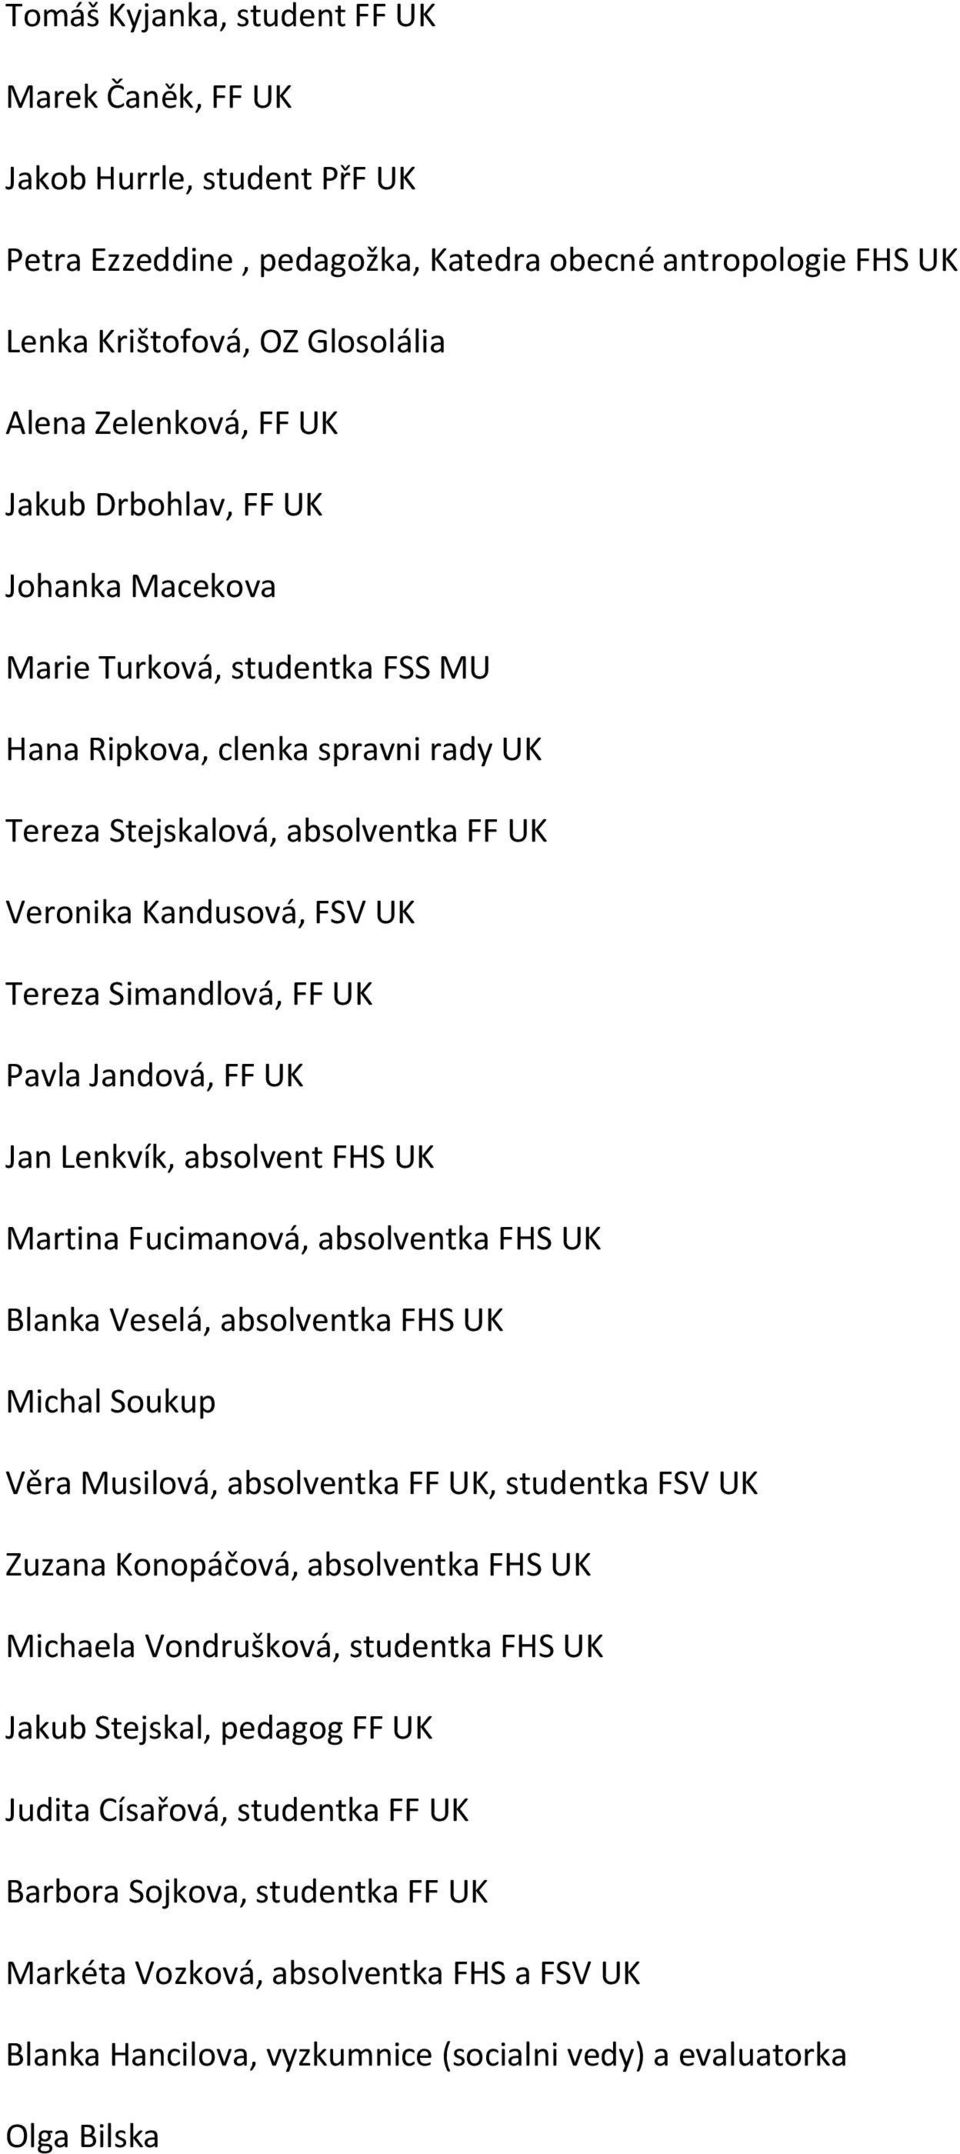 Pavla Jandová, FF UK Jan Lenkvík, absolvent FHS UK Martina Fucimanová, absolventka FHS UK Blanka Veselá, absolventka FHS UK Michal Soukup Věra Musilová, absolventka FF UK, studentka FSV UK Zuzana